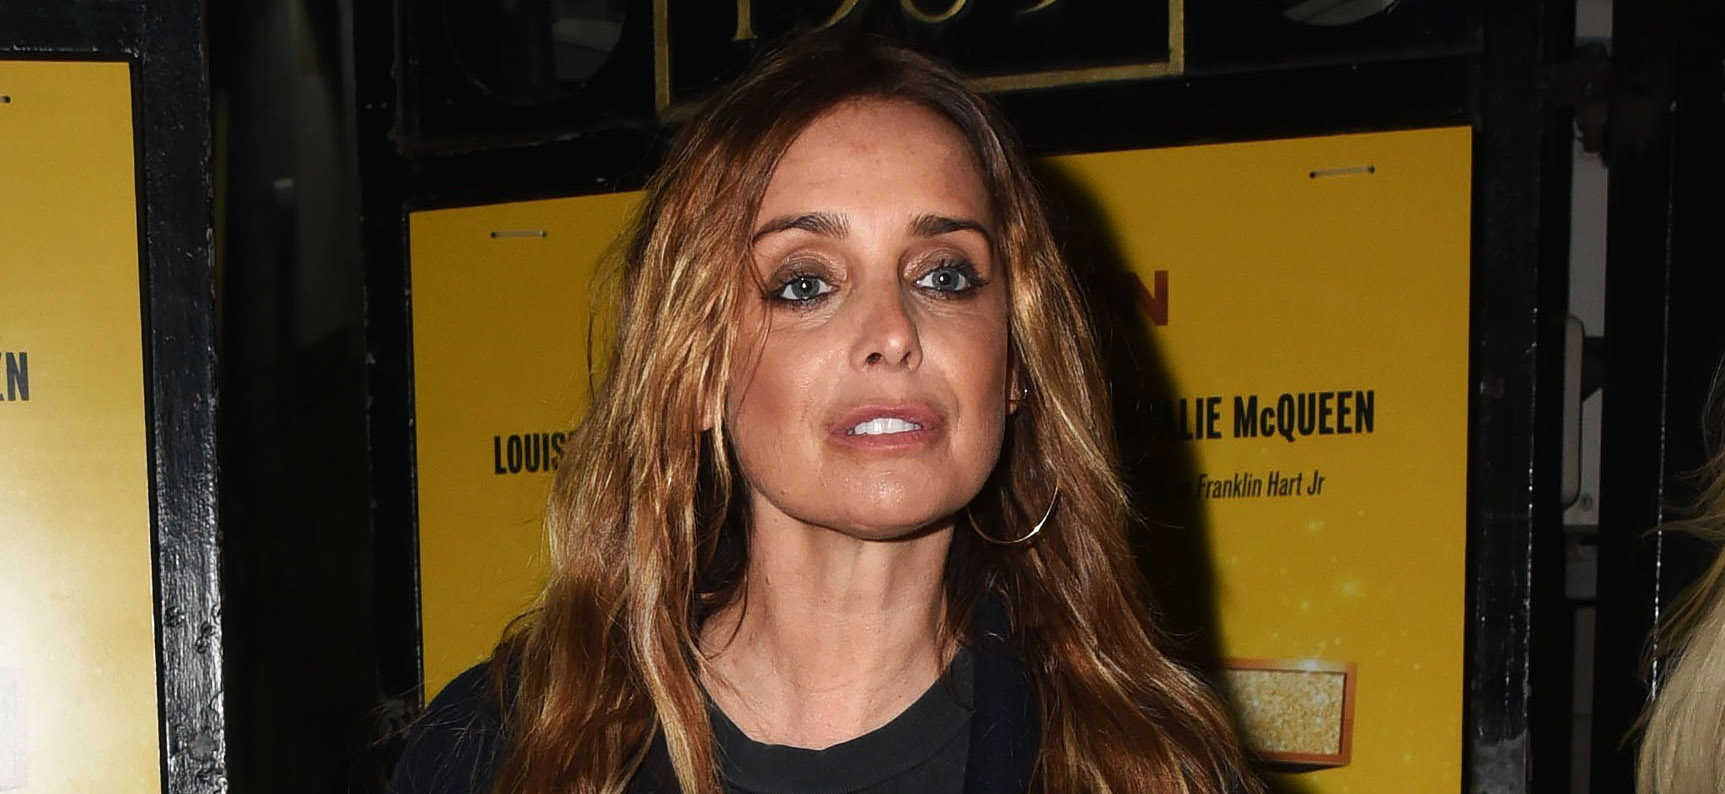 Louise Redknapp saw celebrity psychic to help with dark times